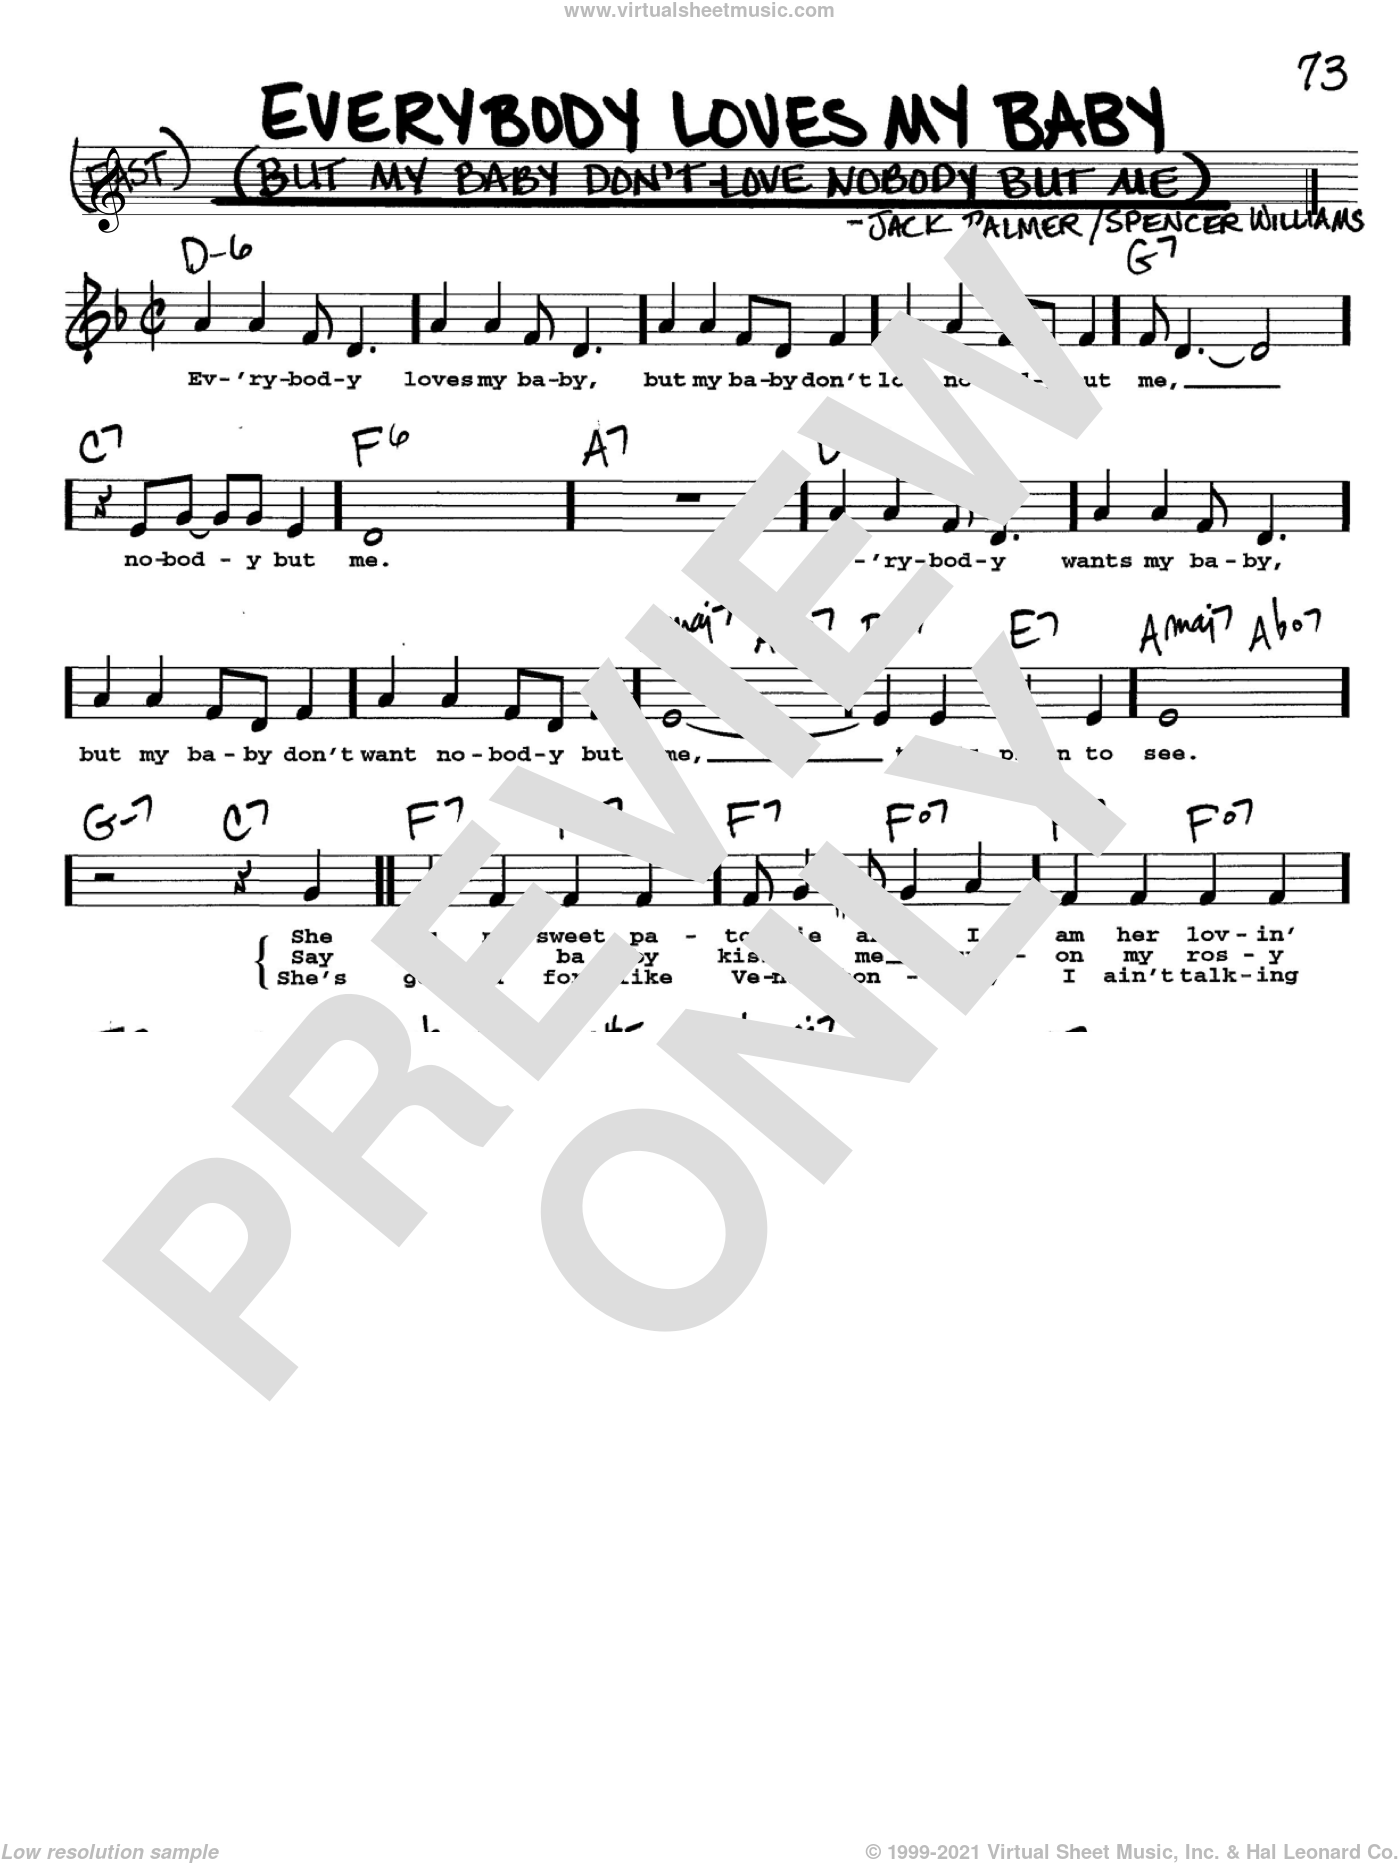 Everybody Loves My Baby (But My Baby Don't Love Nobody But Me) sheet music for voice and other instruments (Vocal Volume 2) by Jack Palmer and Spencer Williams. Score Image Preview.